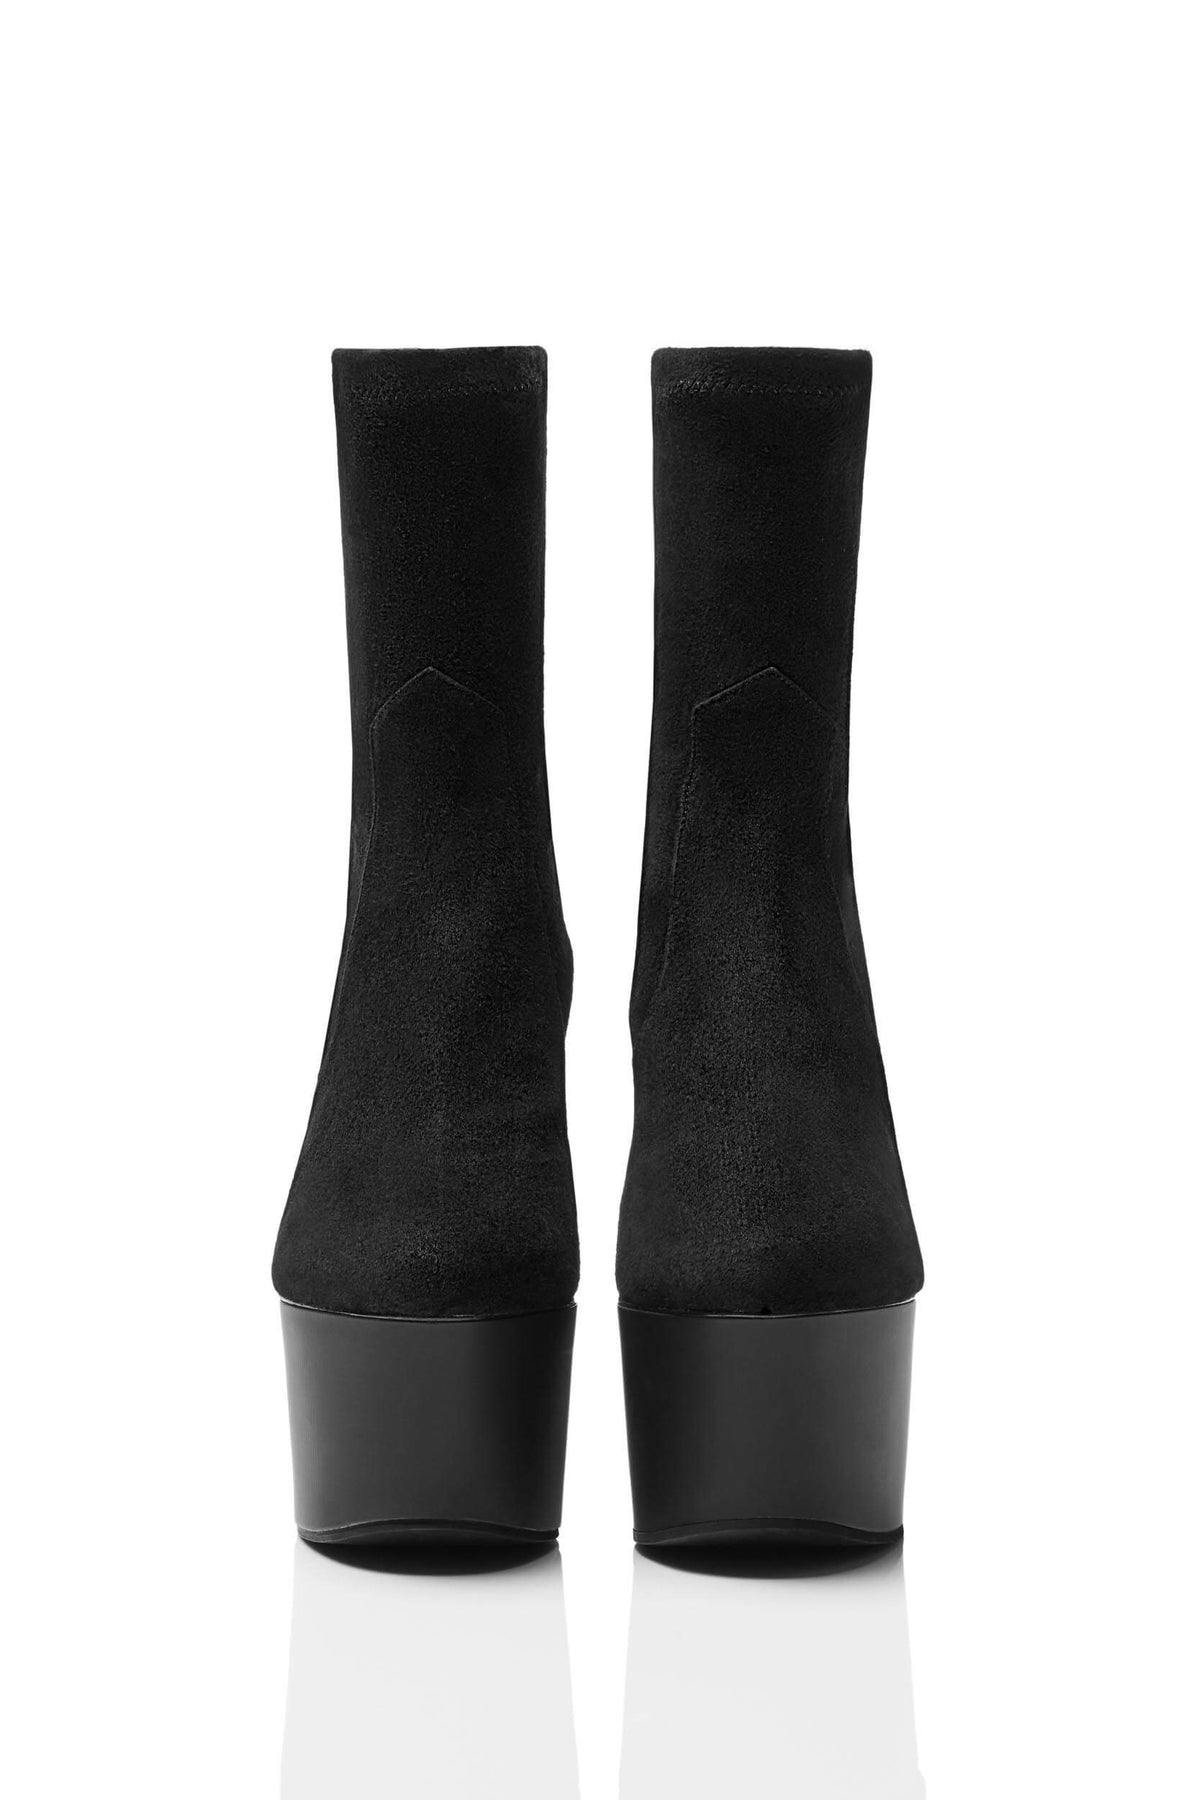 HAIKI 851 – Stretch pull-on platform boot with chic, almond shape toe. Made of Kidsuede in black.